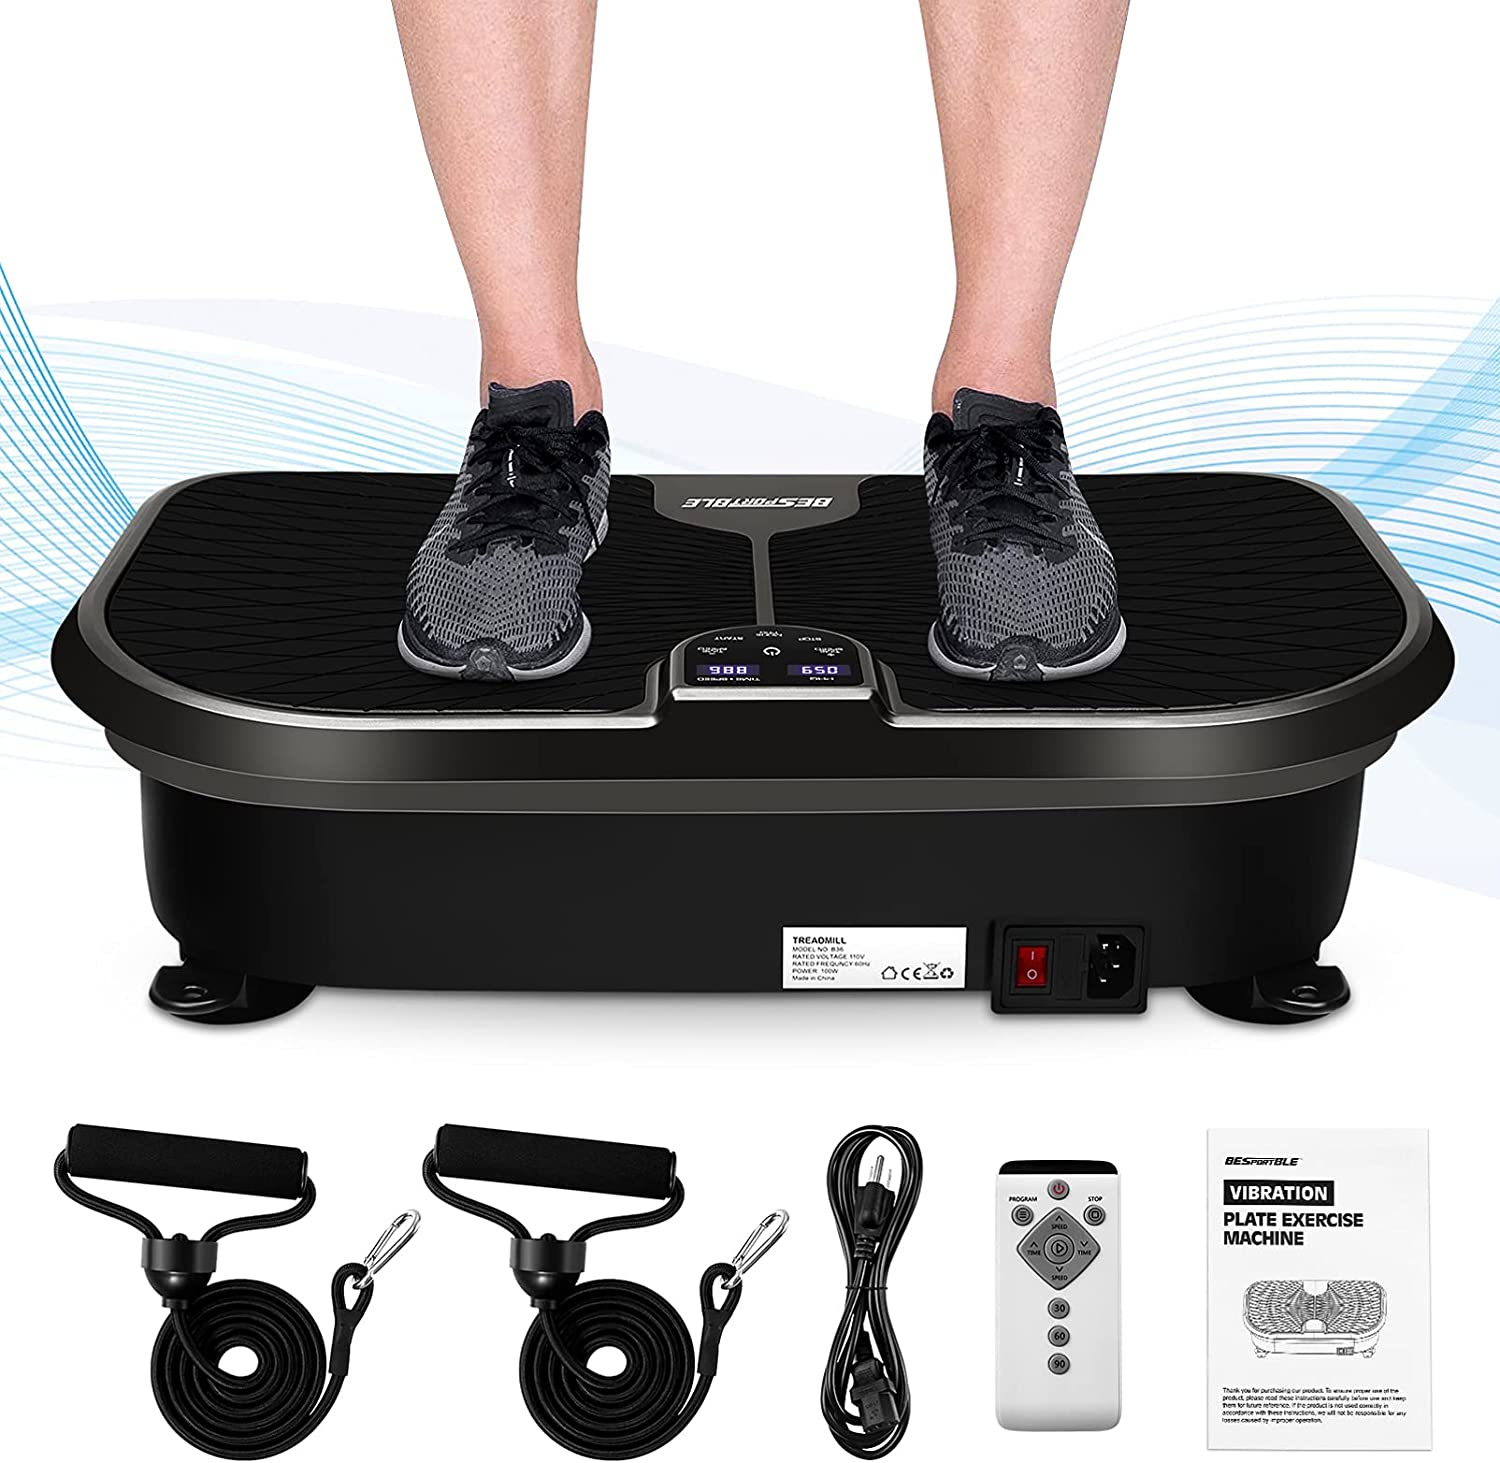 Max 45% OFF Finally resale start BESPORTBLE Slimming Machine with Ring Board Vibrating Belt Exerc